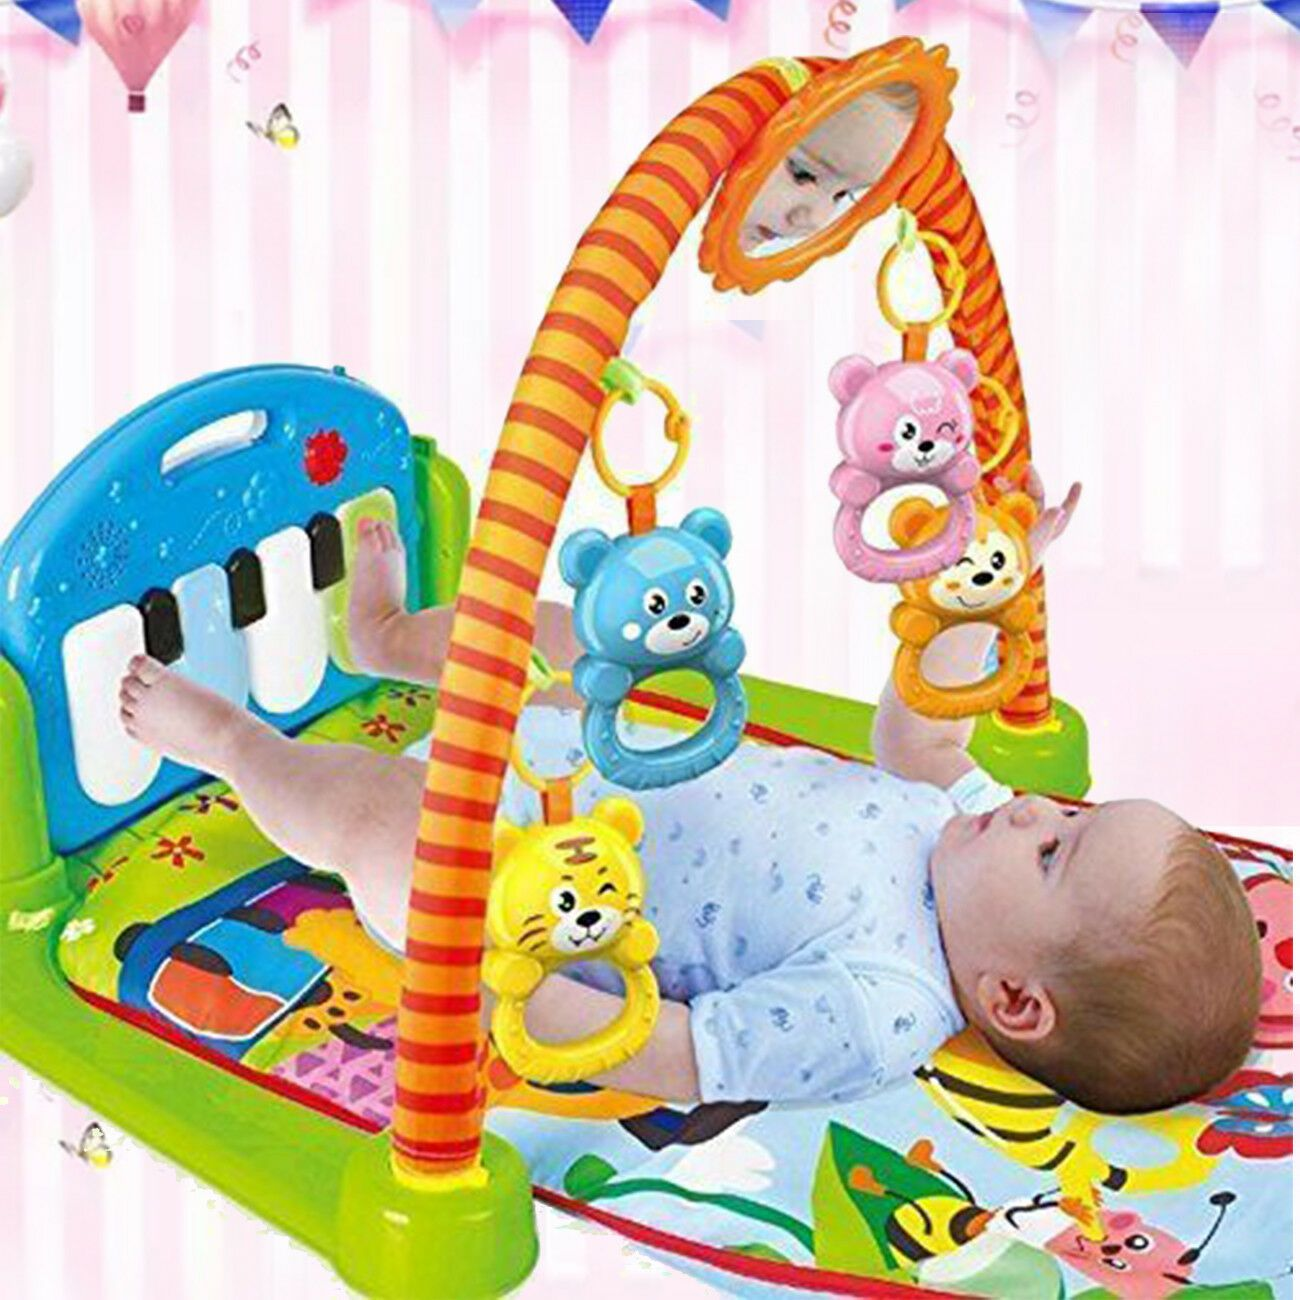 Details about xmas gift baby gym play mat musical activity